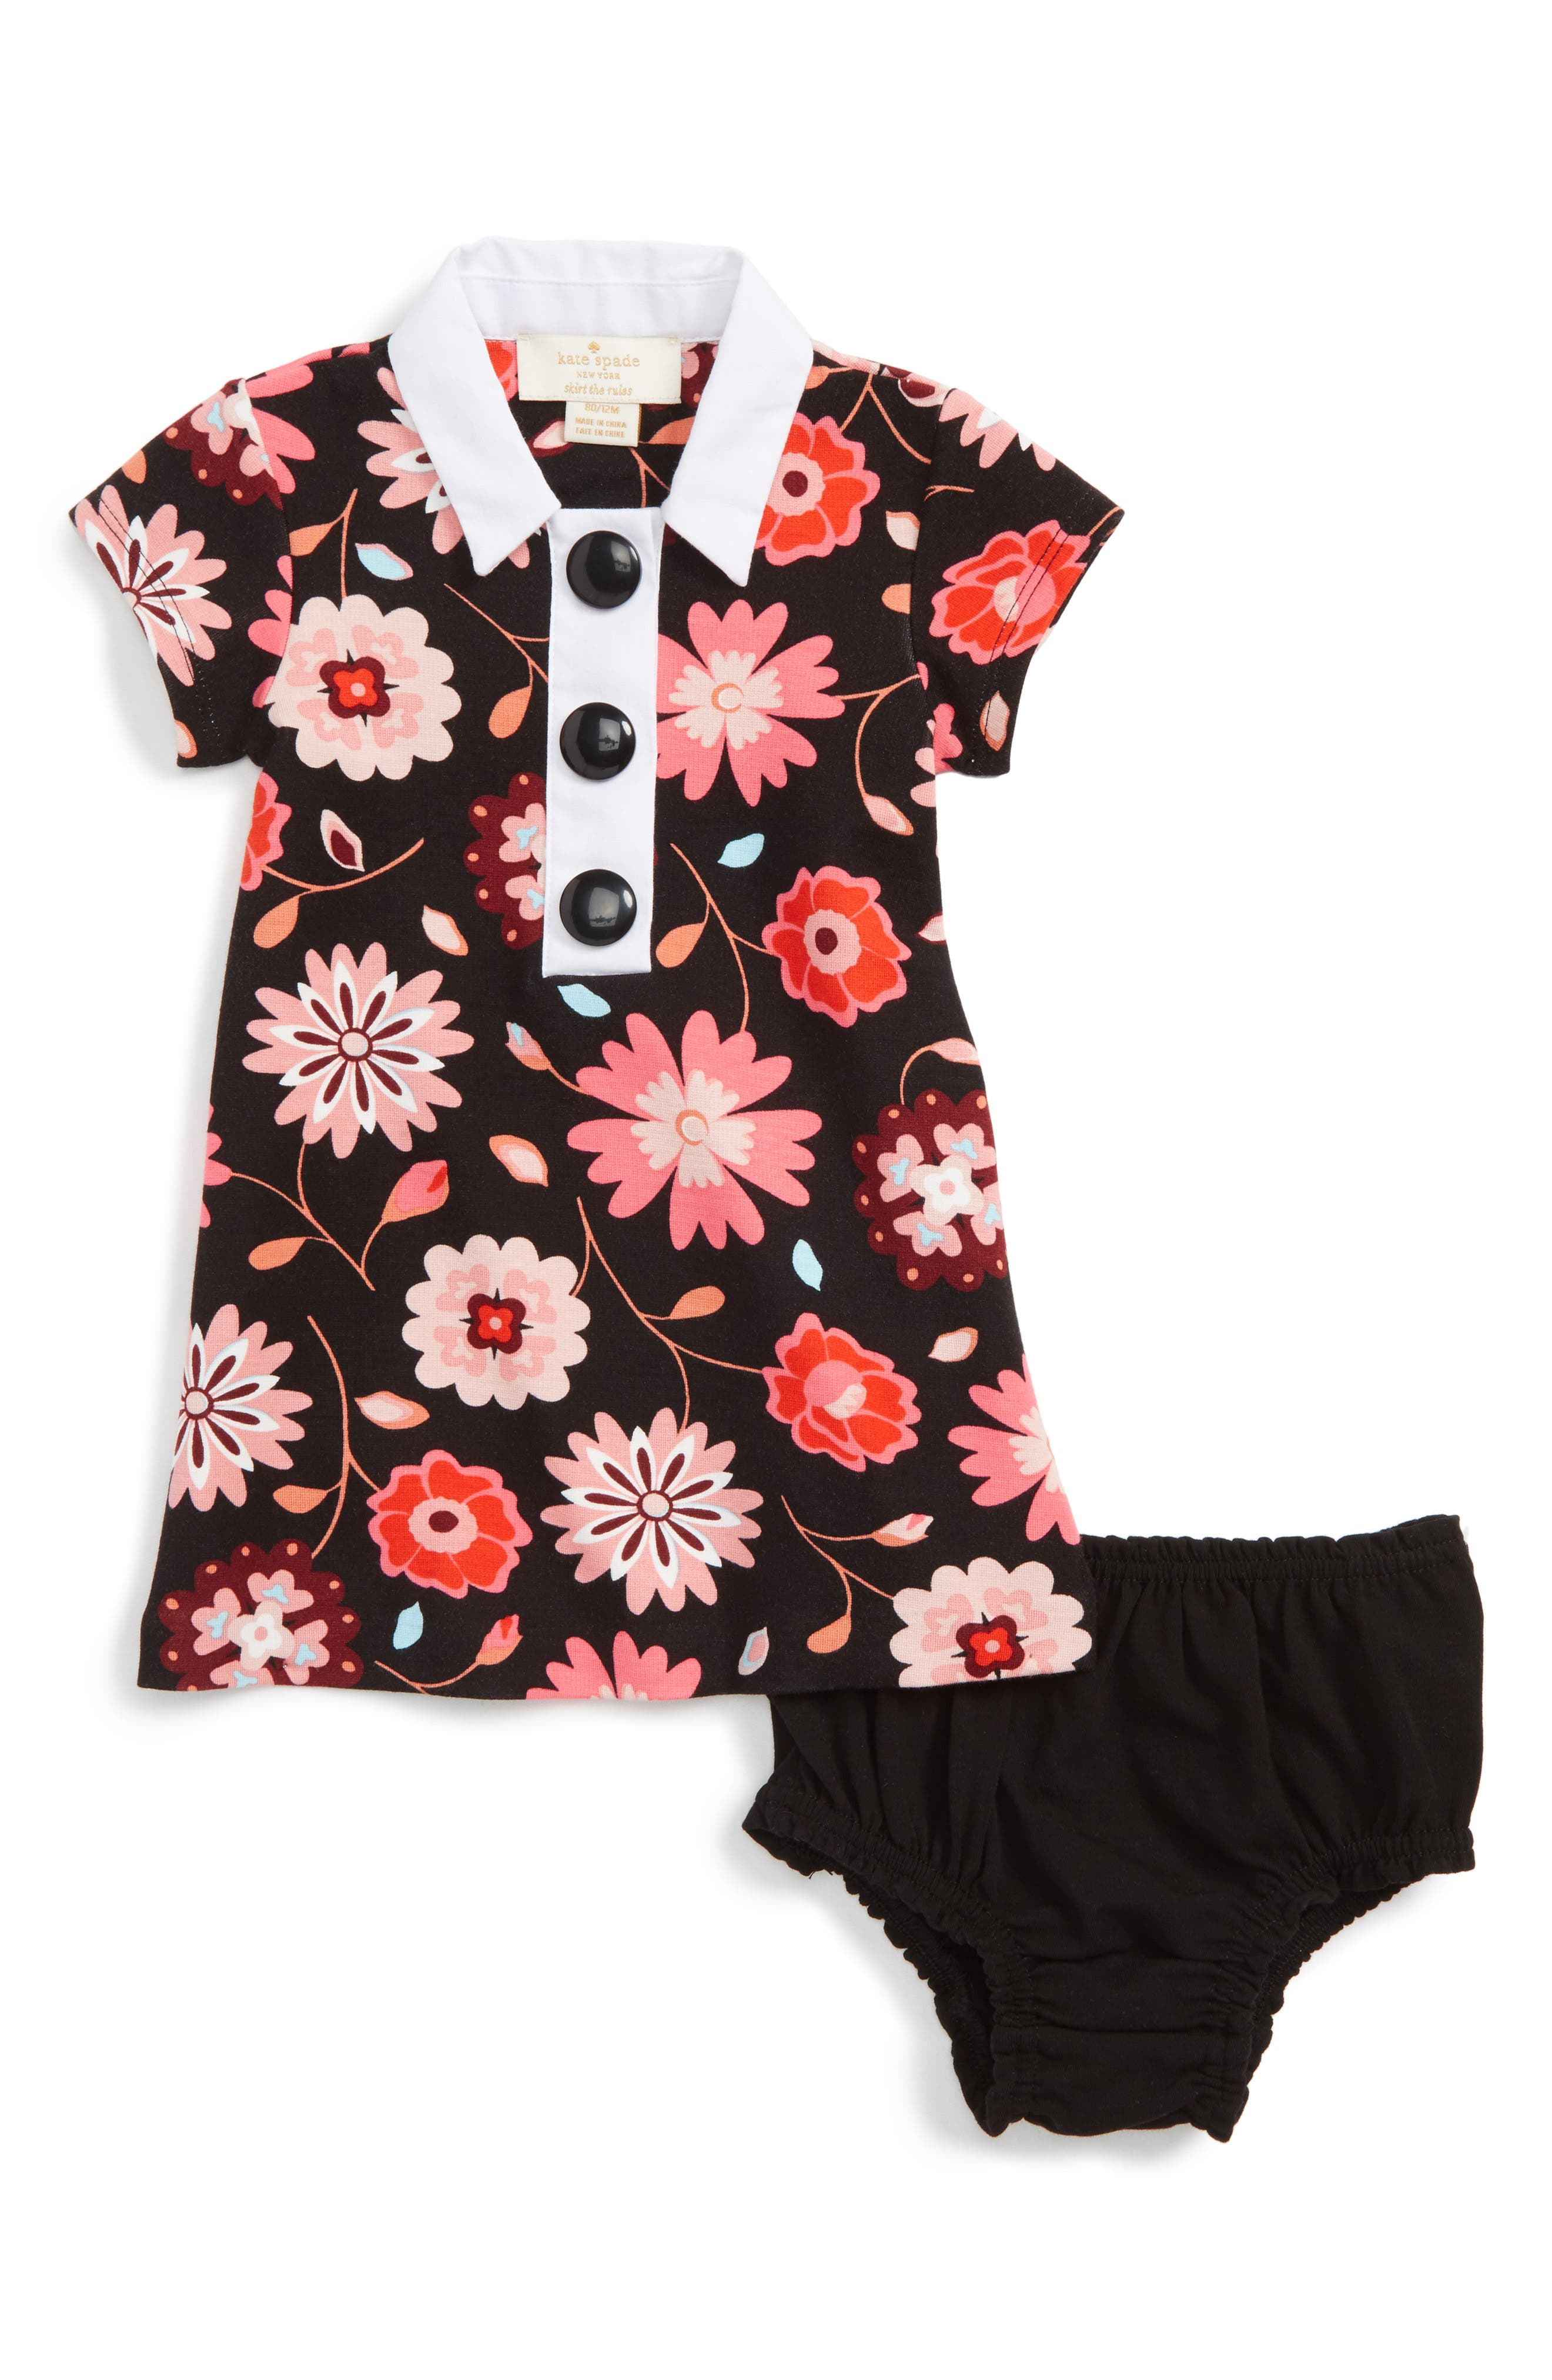 kate spade new york collared shift dress (Baby Girls)